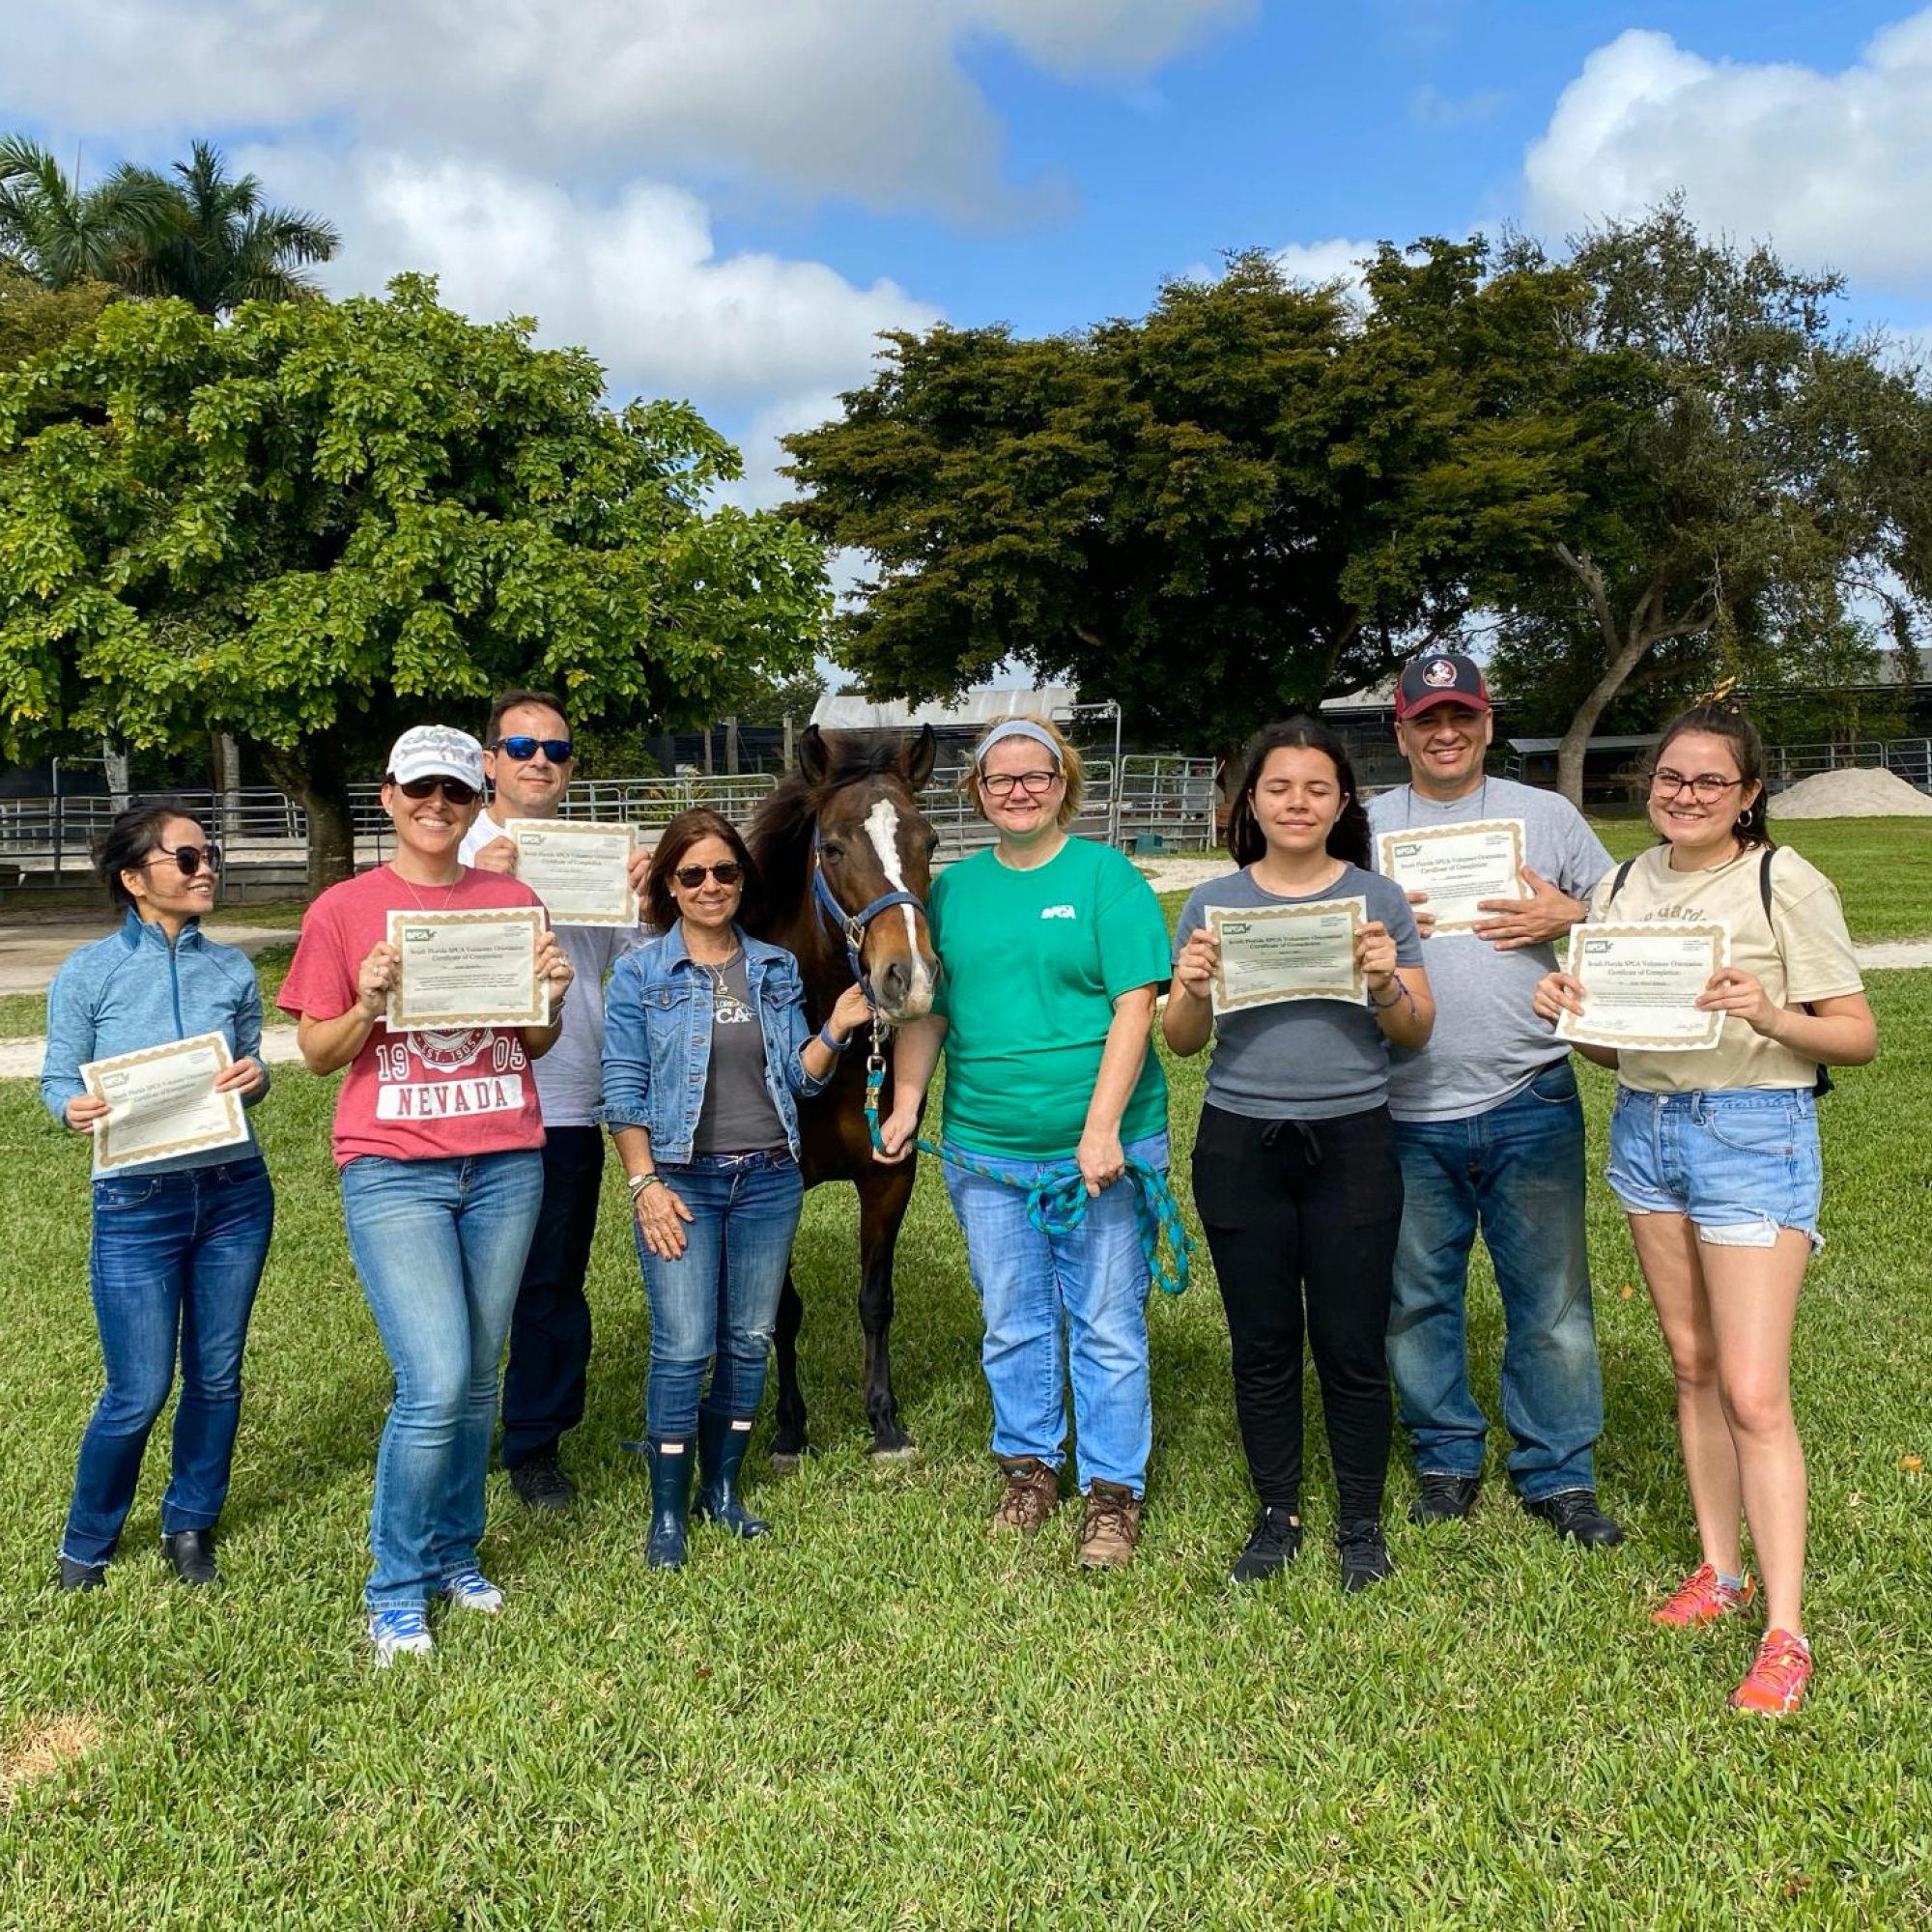 South Florida Society for the Prevention of Cruelty to Animals Orientation